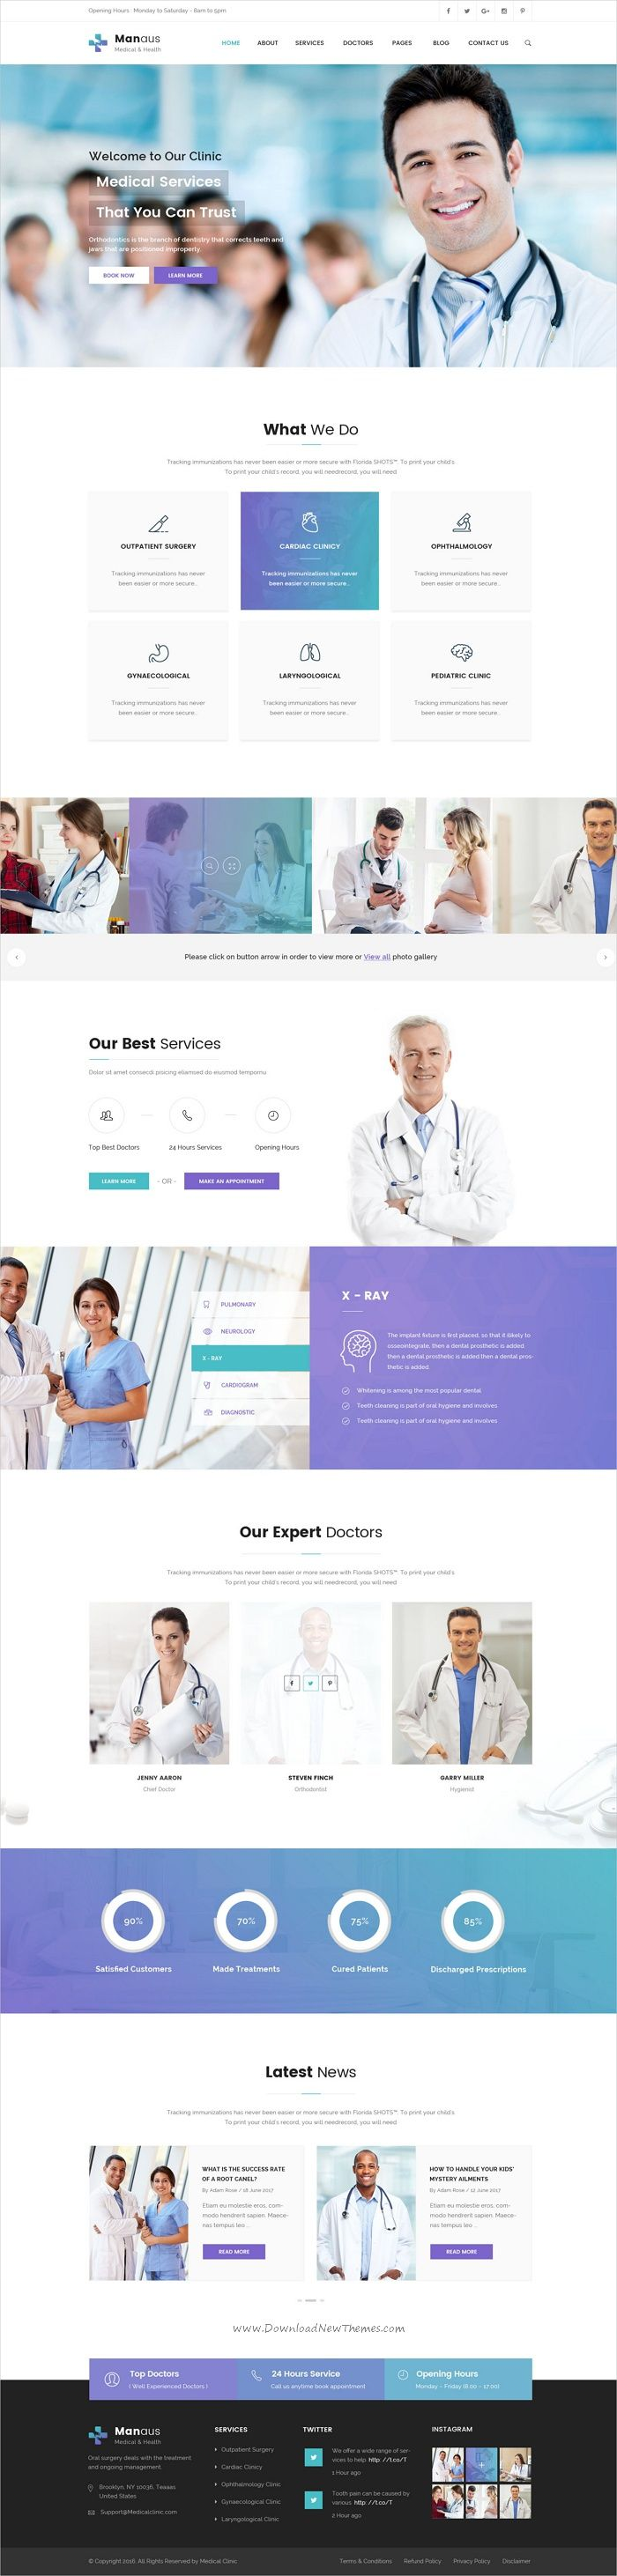 Manaus is clean and modern design #Photoshop template for #medical and #healthcare website with 12 layered PSD files download now..